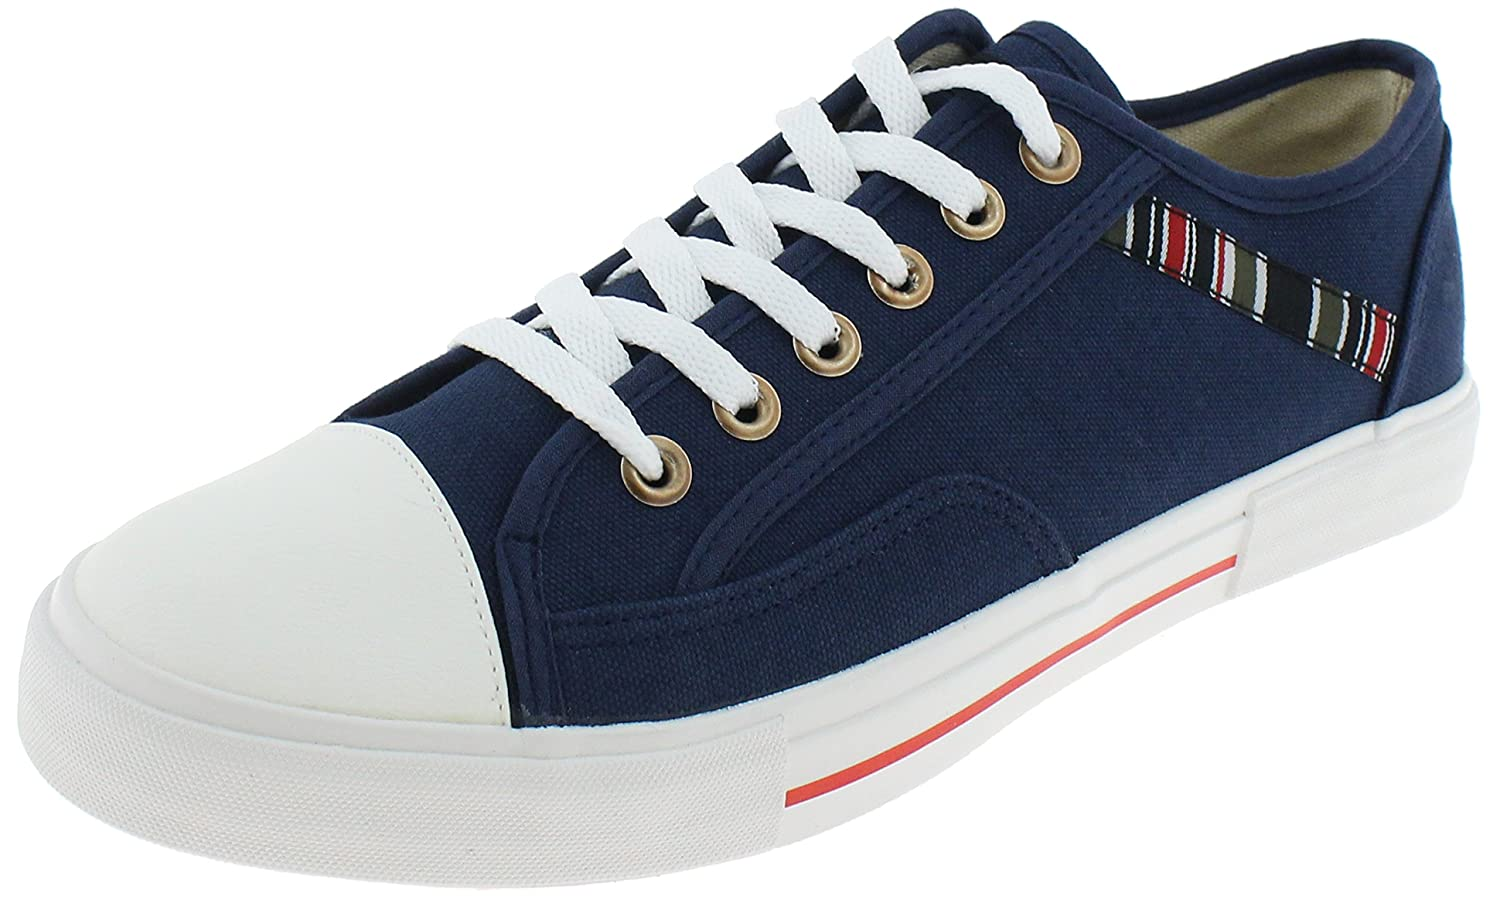 Triple Five Soul Hombre Brooklyn Brooklyn Brooklyn Low Top Tenis Navy 13 733ac2